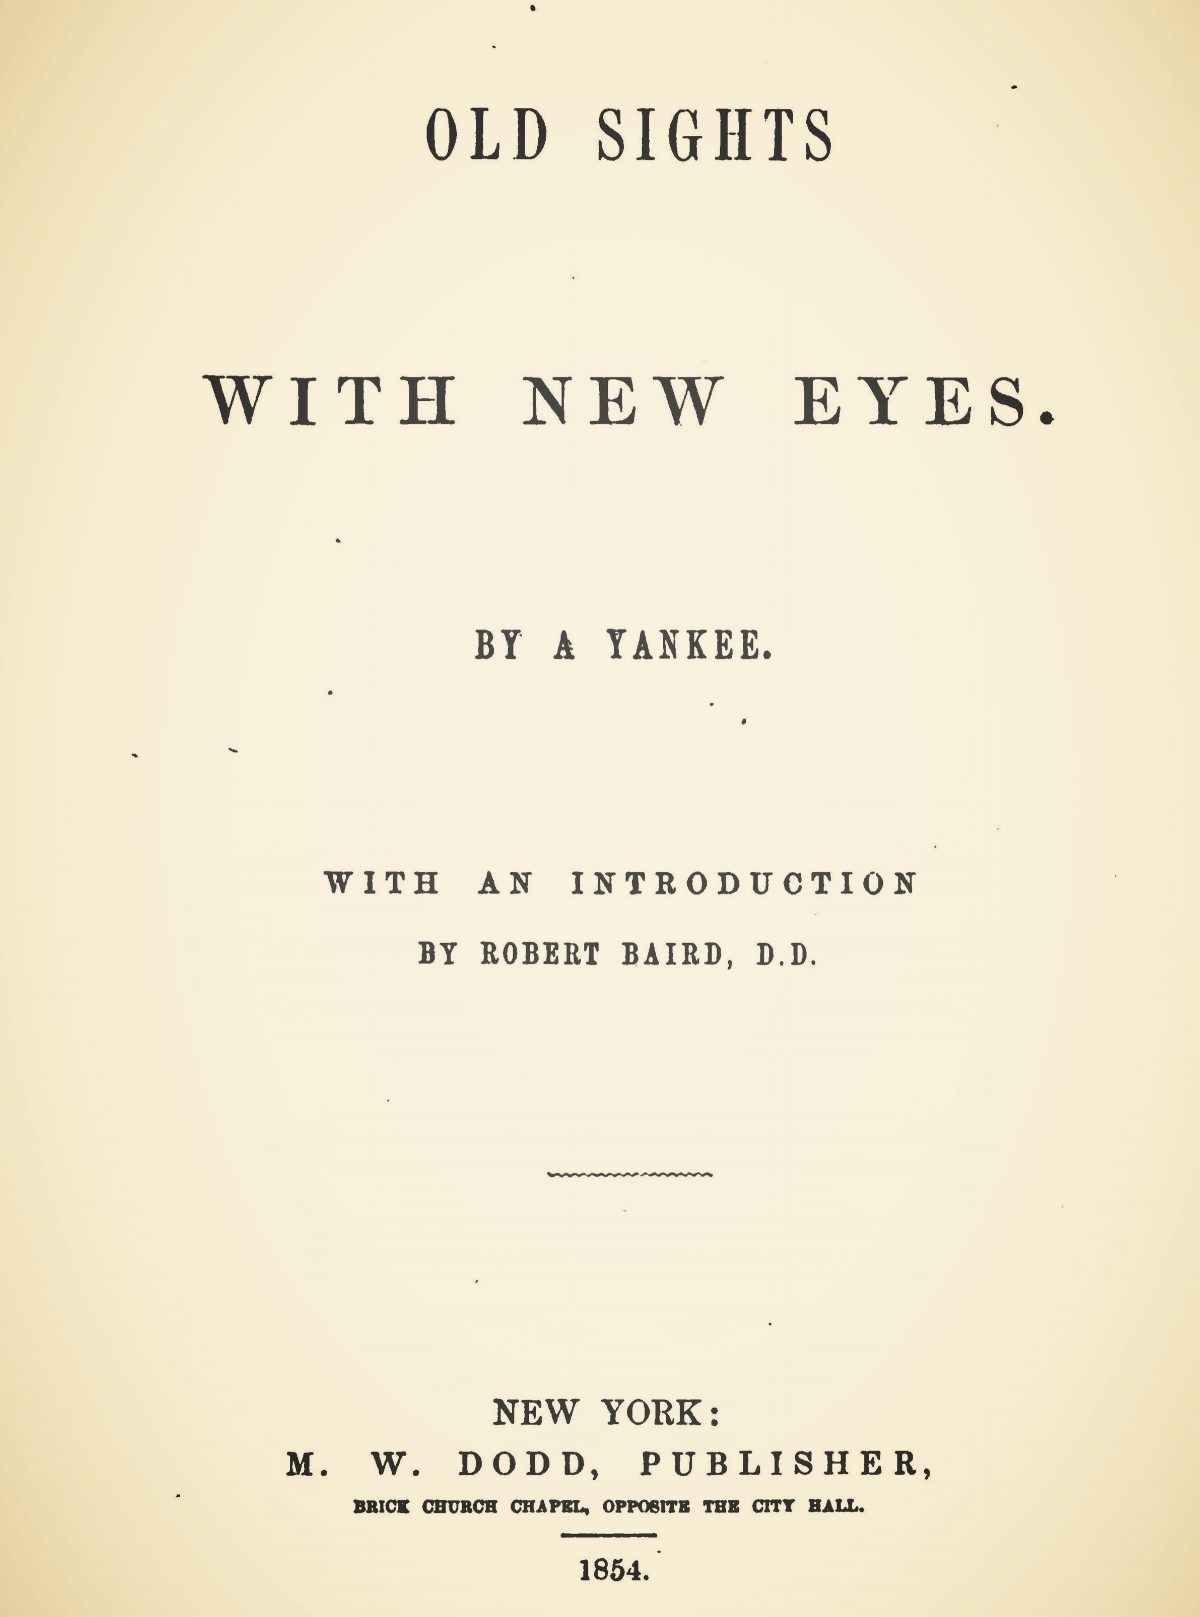 Baird, Robert, Old Sights With New Eyes Title Page.jpg